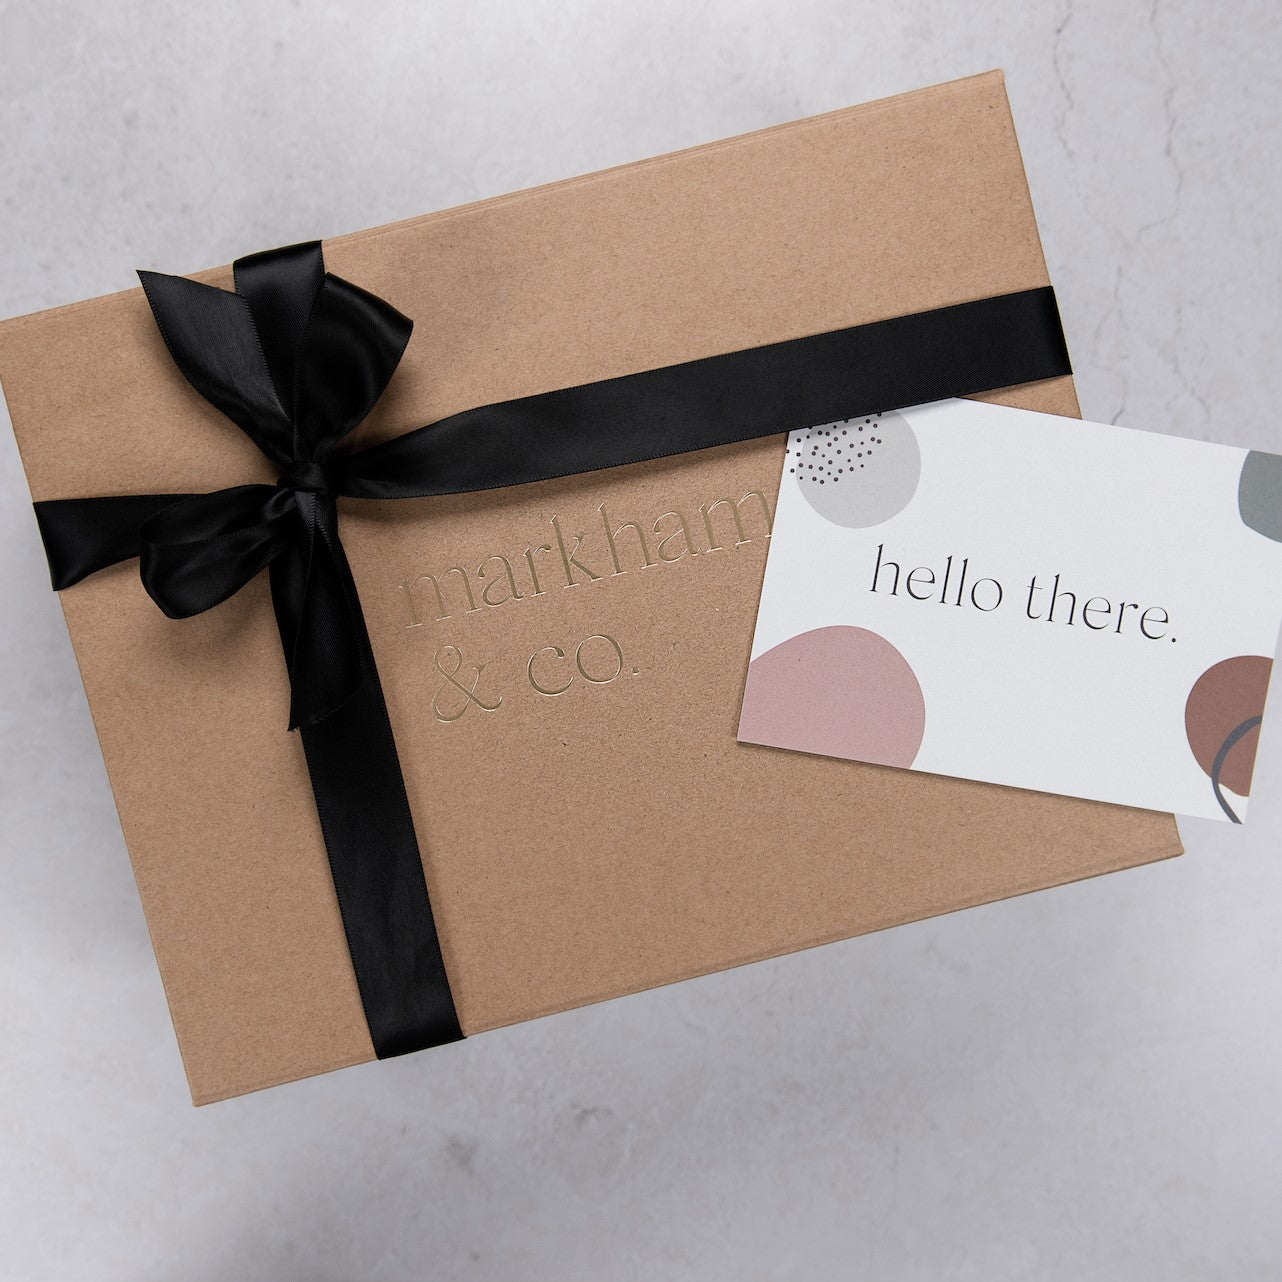 Markham & Co Signature Gift Box and Card